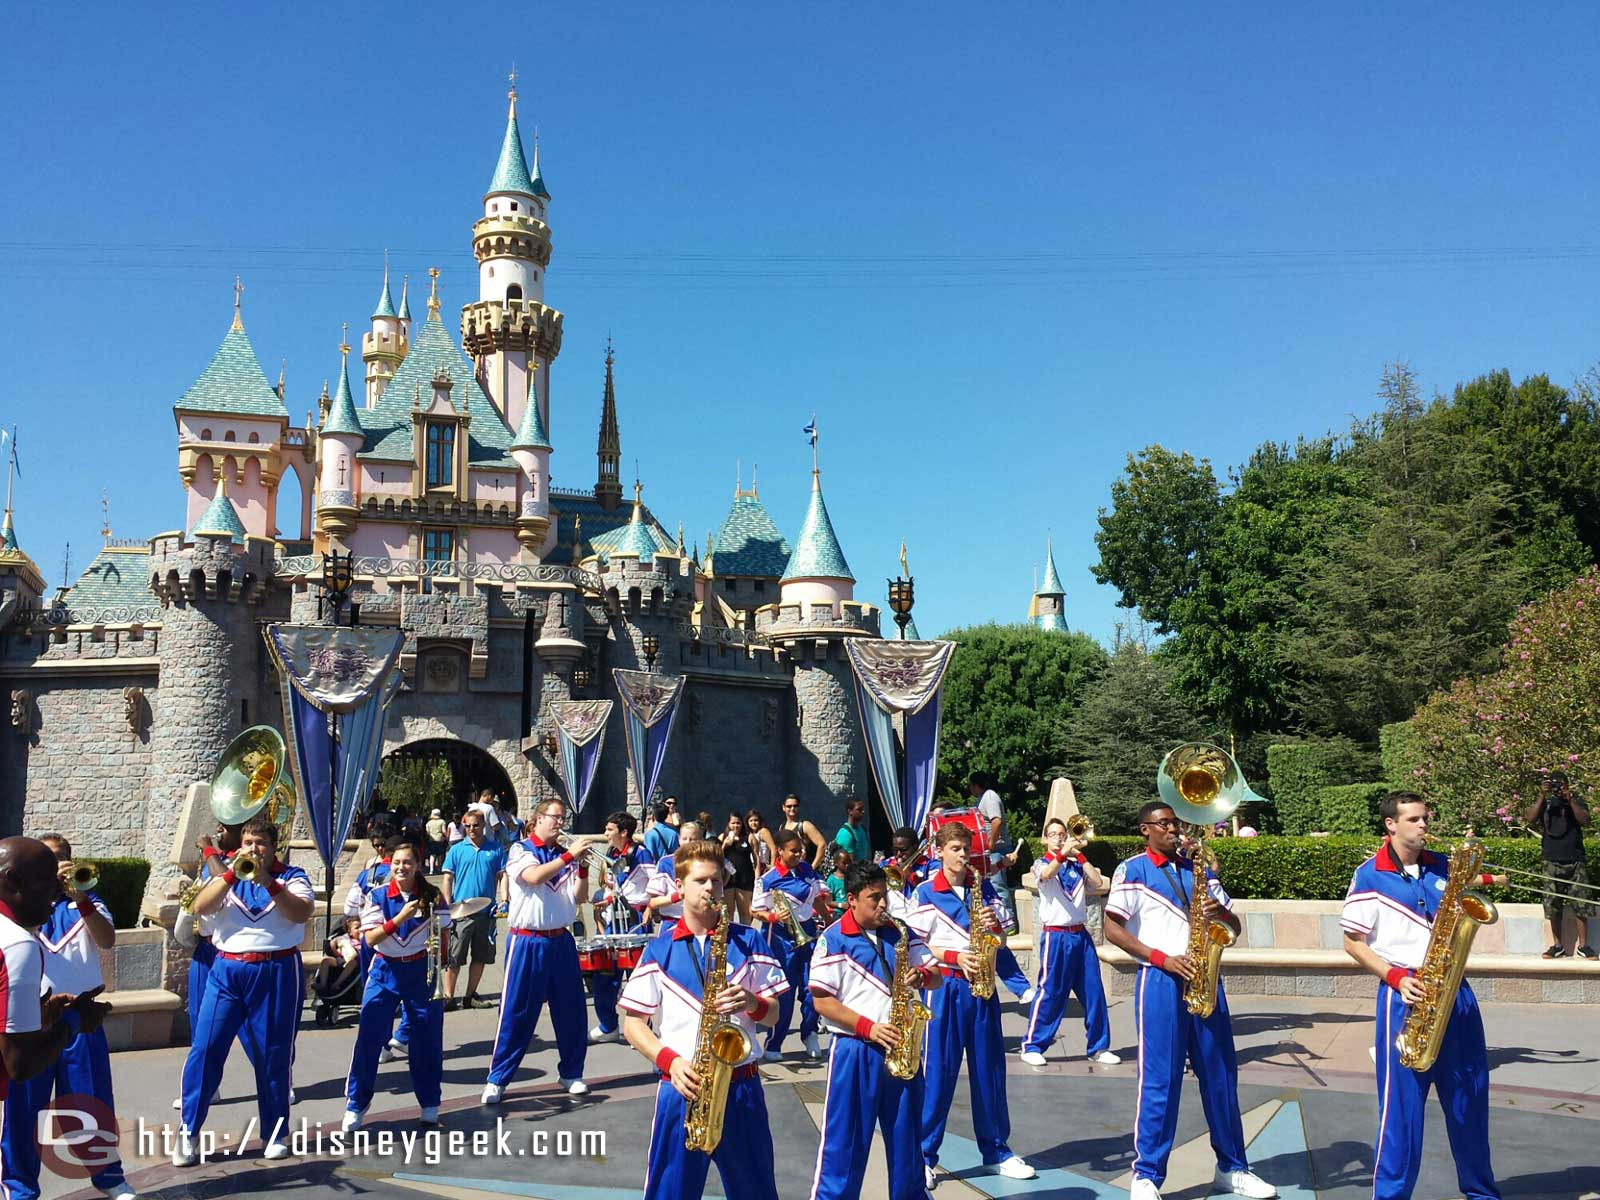 Last Castle set for the 2014 #Disneyland All-American College Band